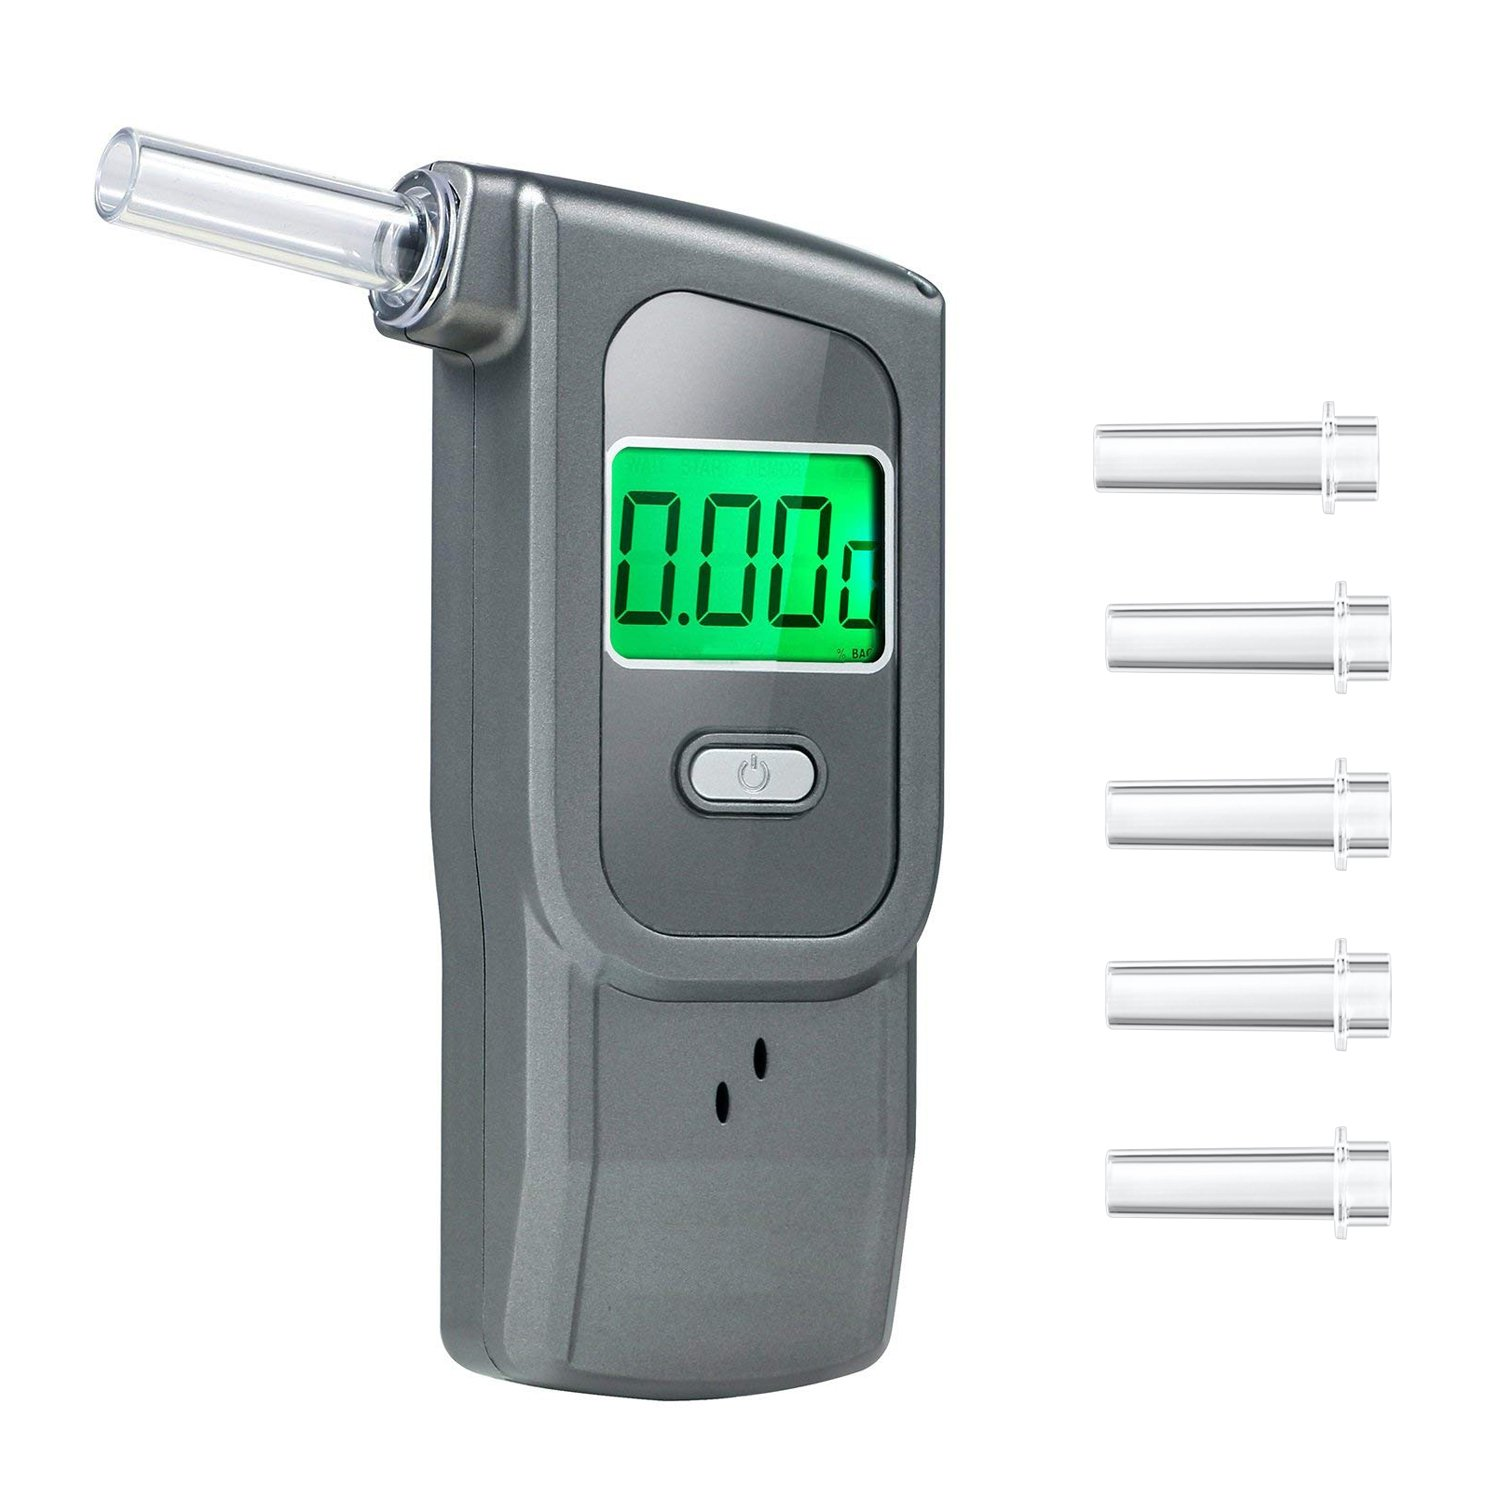 Breathalyzer Anntoo Professional Grade Portable Digital Alcohol Tester with 5 Mouthpieces for Personal Use - Gray